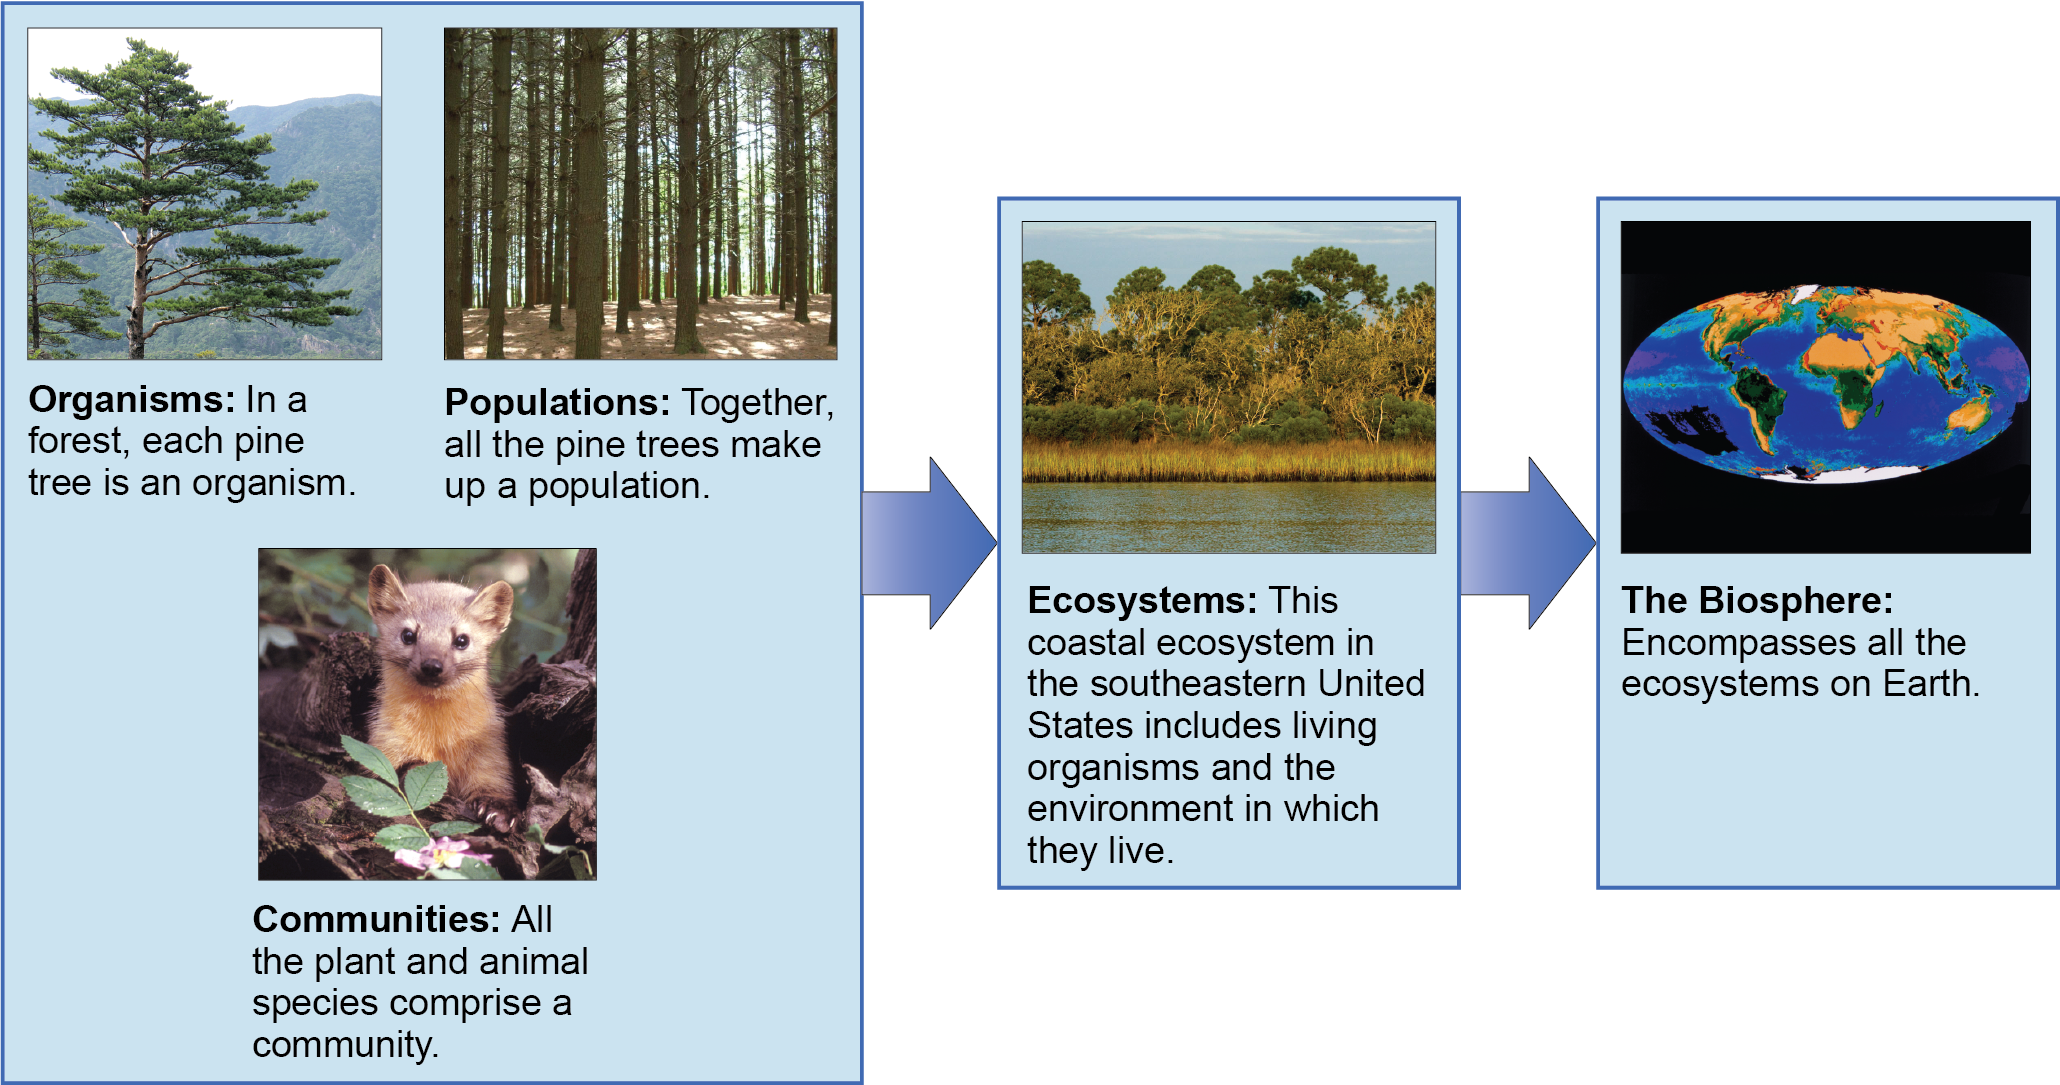 "A flow chart of three sections shows the hierarchy of living organisms. The top box inludes Organisms, populations, and communities"" and has three photographs: A single tree for organisms, a photograph of tall trees in a forest for populations, and an image of an animal among the trees for communities. The second box is labeled ""ecosystems"" and has a photograph of a body of water, behind which is a stand of tall grasses developing into more dense vegetation and trees as distance from the water increases. The third box is labeled ""the biosphere"" and shows a drawing of planet Earth."